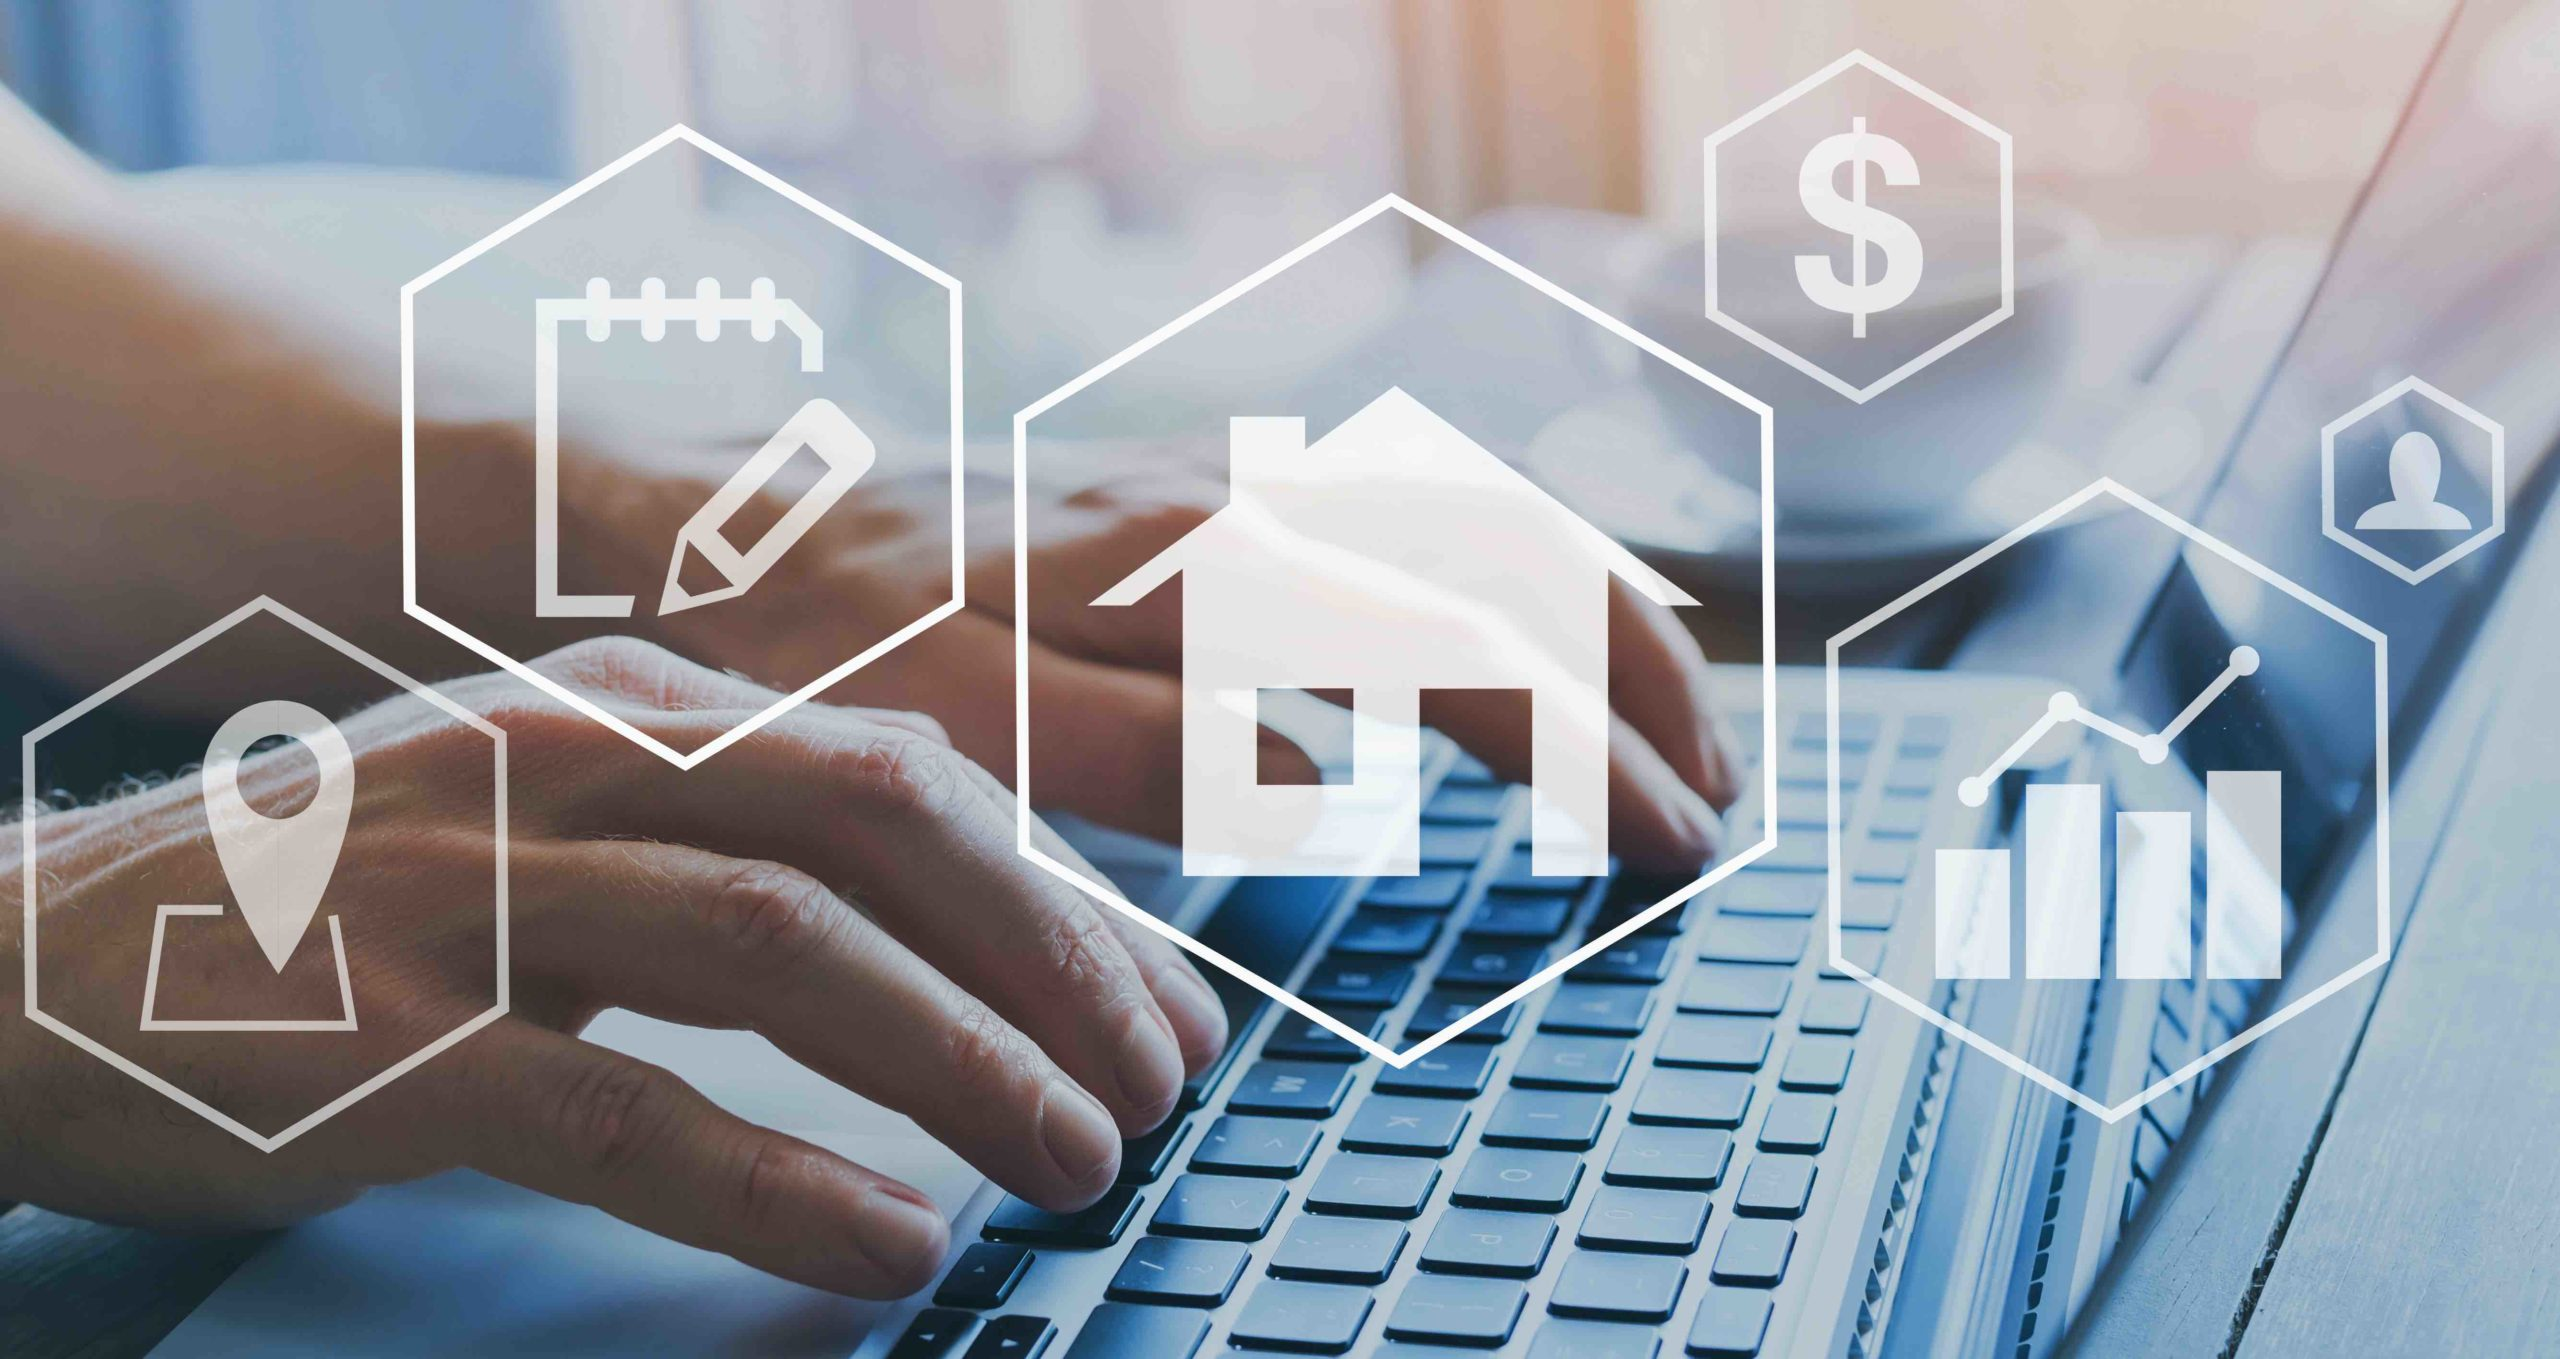 Division Of Marital Property In The Digital Age